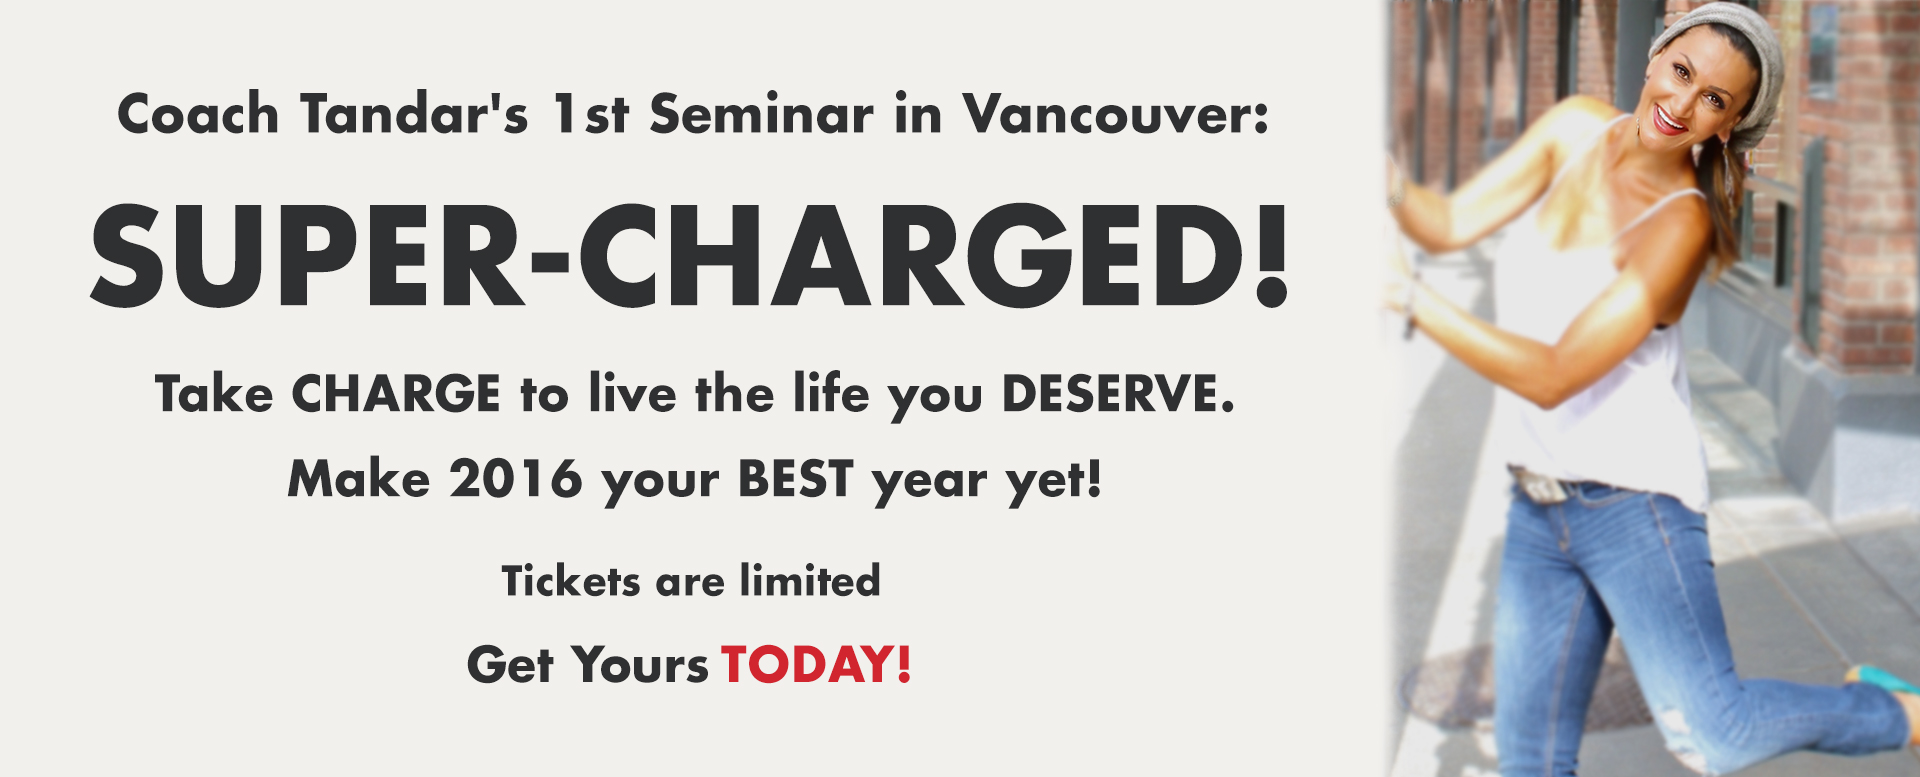 Vancouver Seminar - Super Charged